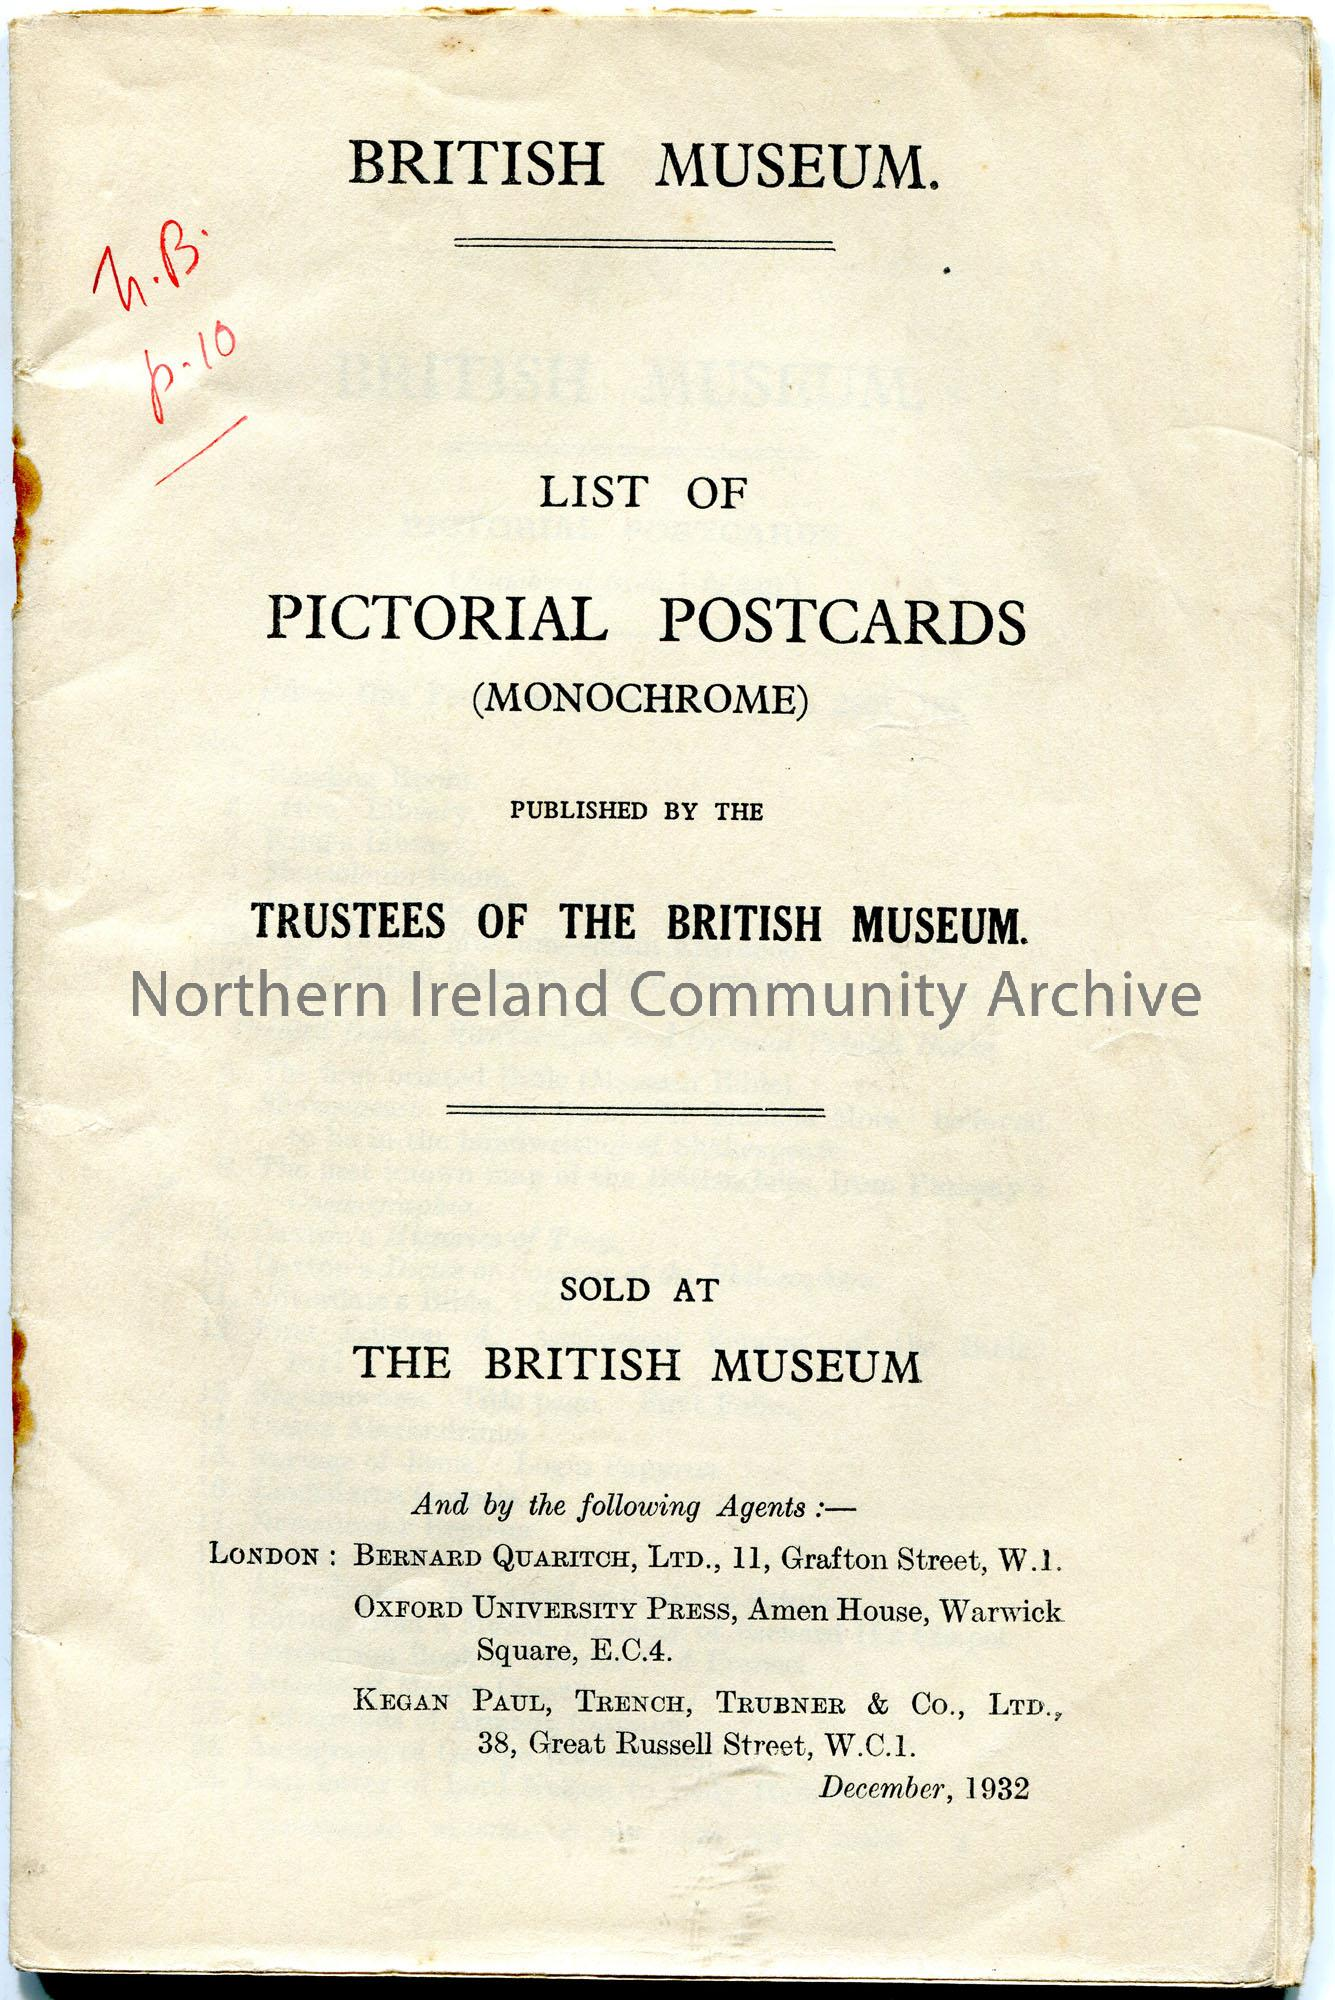 Printed and stapled booklet from the British Museum of a 'List of Pictorial Postcards' published by the Trustees of the British Museum. 'N.B. p.10' ha…